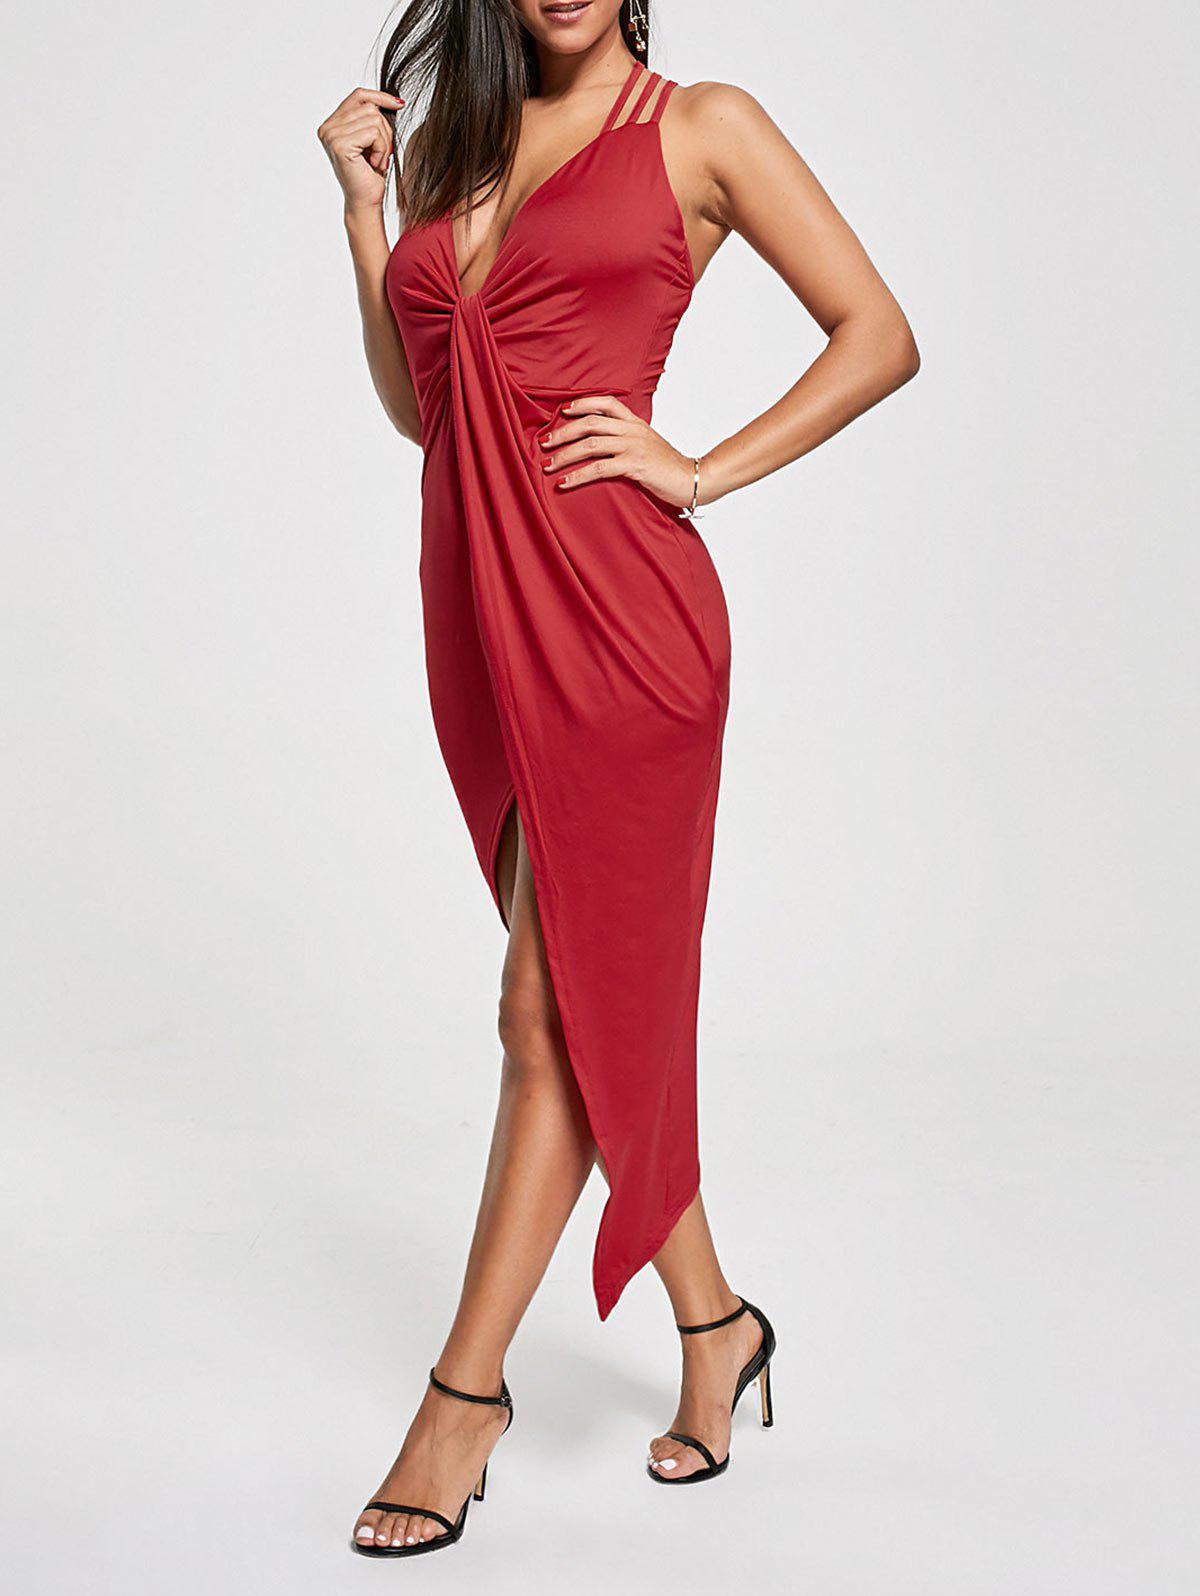 Criss Cross Cutout Front Twist Asymmetric Club Dress - RED M